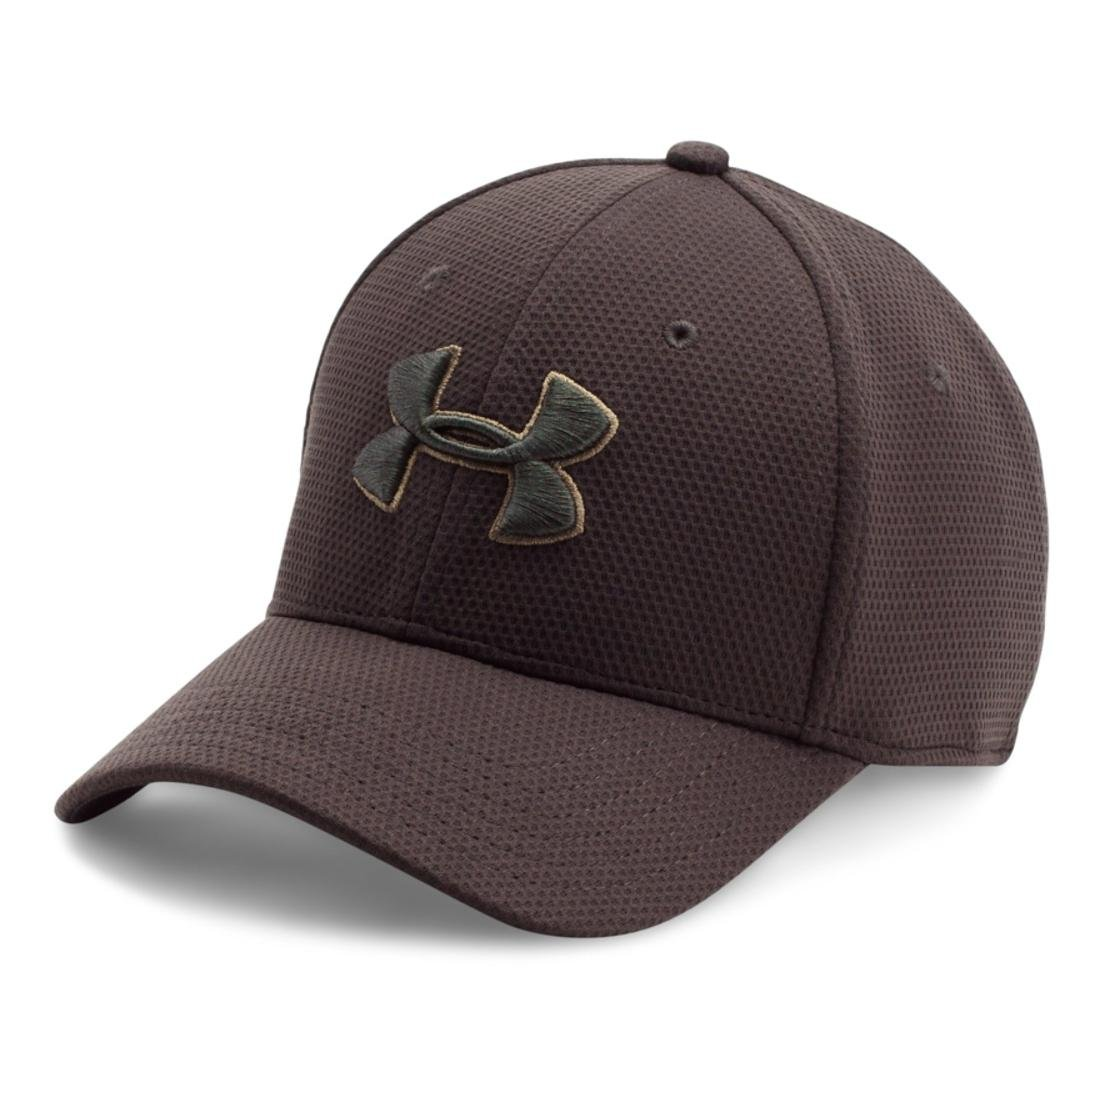 9694357f228 Amazon.com  Under Armour Men s Blitzing II Stretch Fit Cap  UNDER ARMOUR   Sports   Outdoors